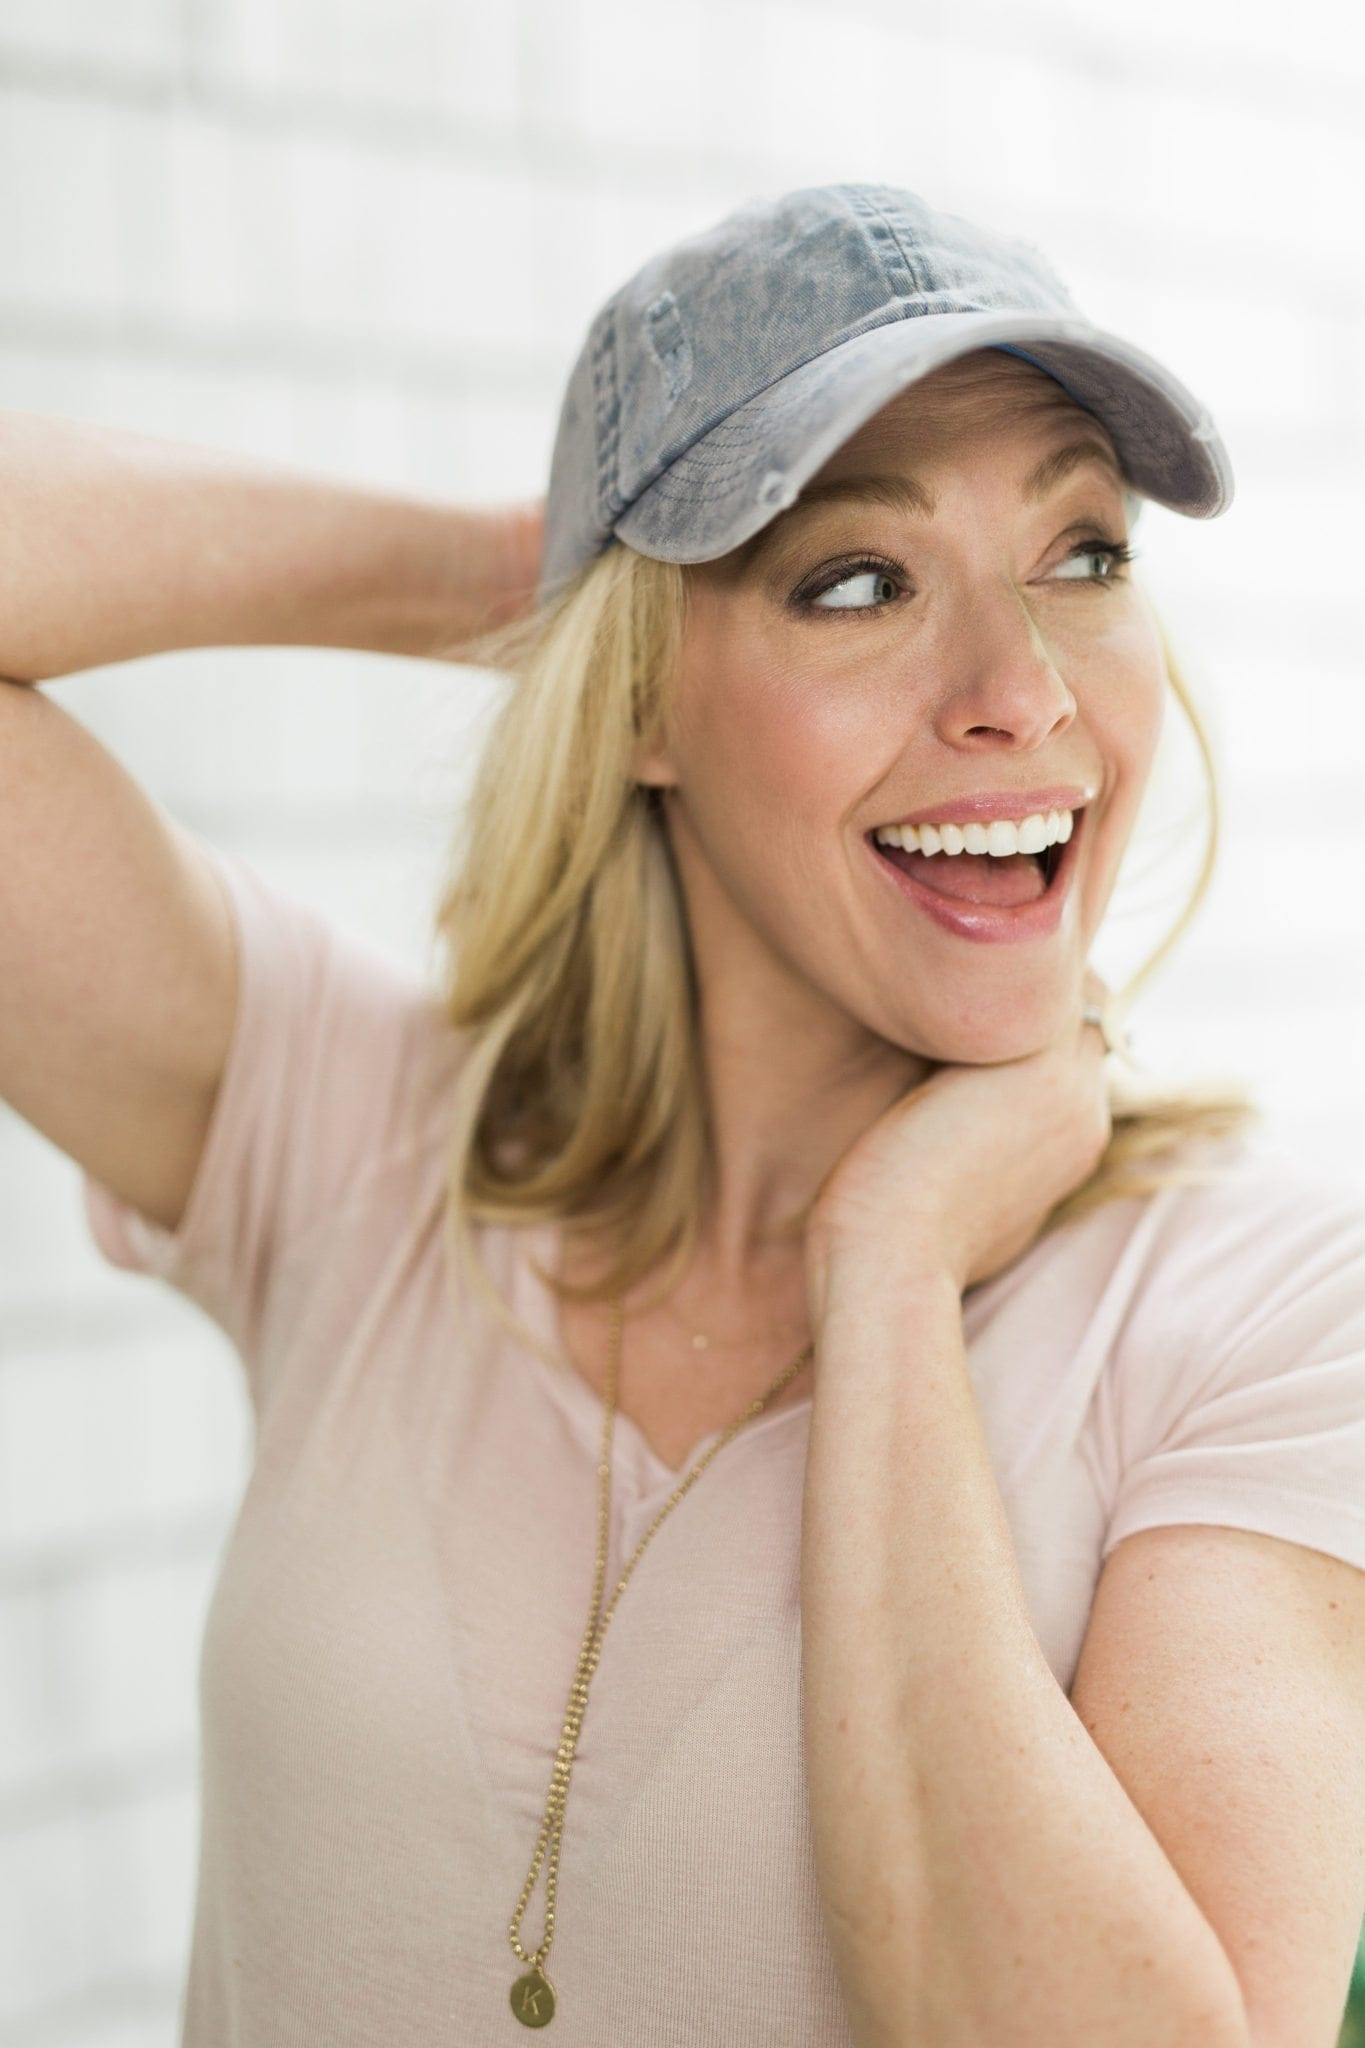 Blue denim baseball cap. The perfect bad hair day disguise! I love the distressed women hat with a blush colored tee shirt.